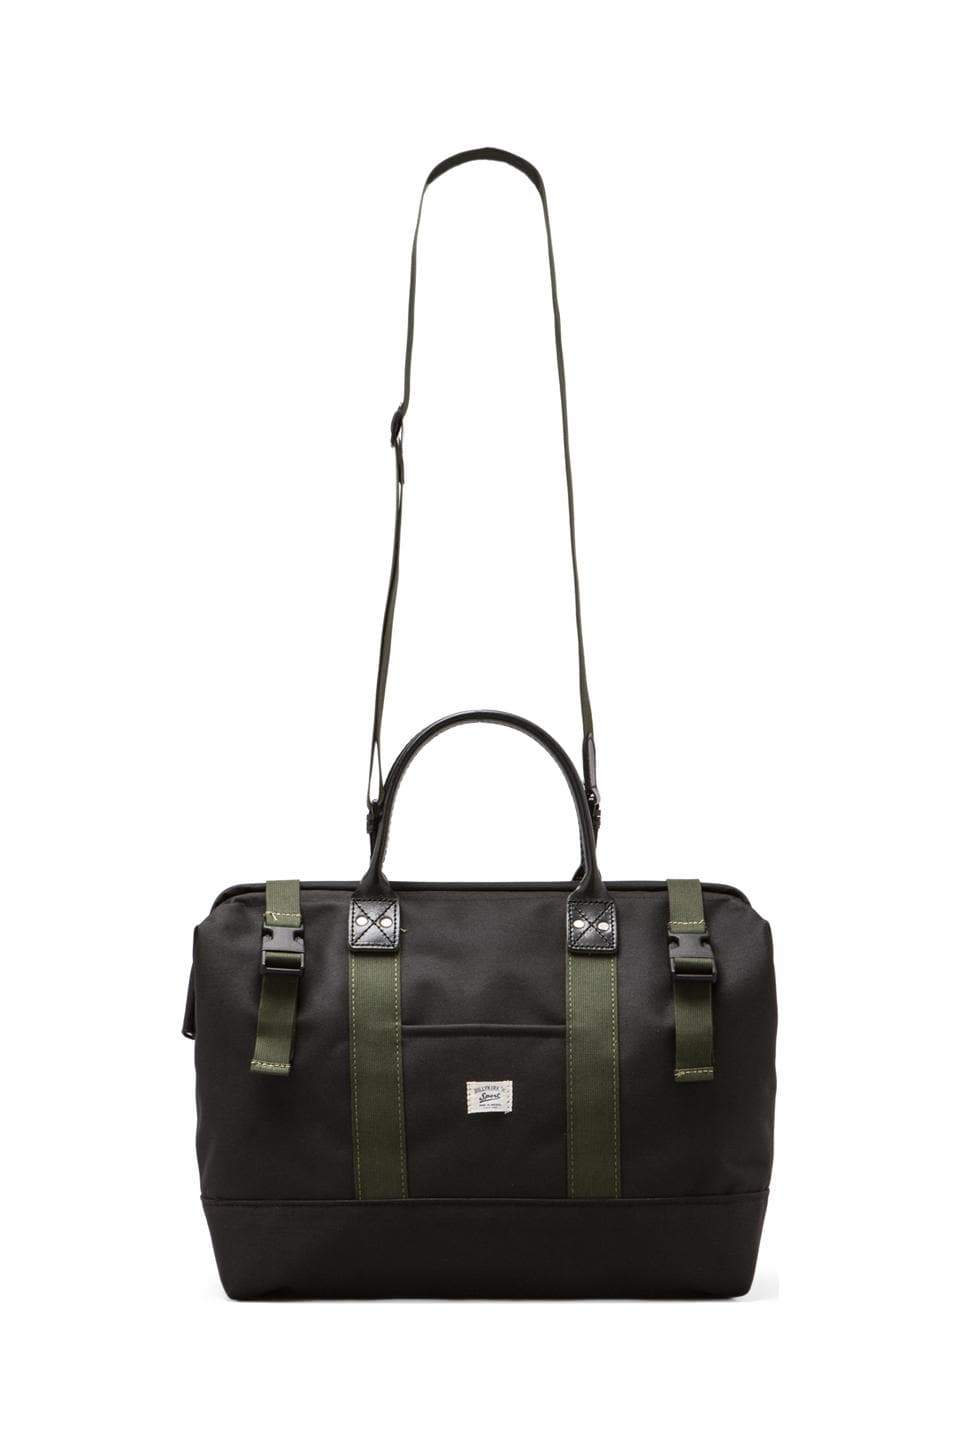 "Billykirk Medium 16"" Sport Carryall in Black/ Olive Sport"